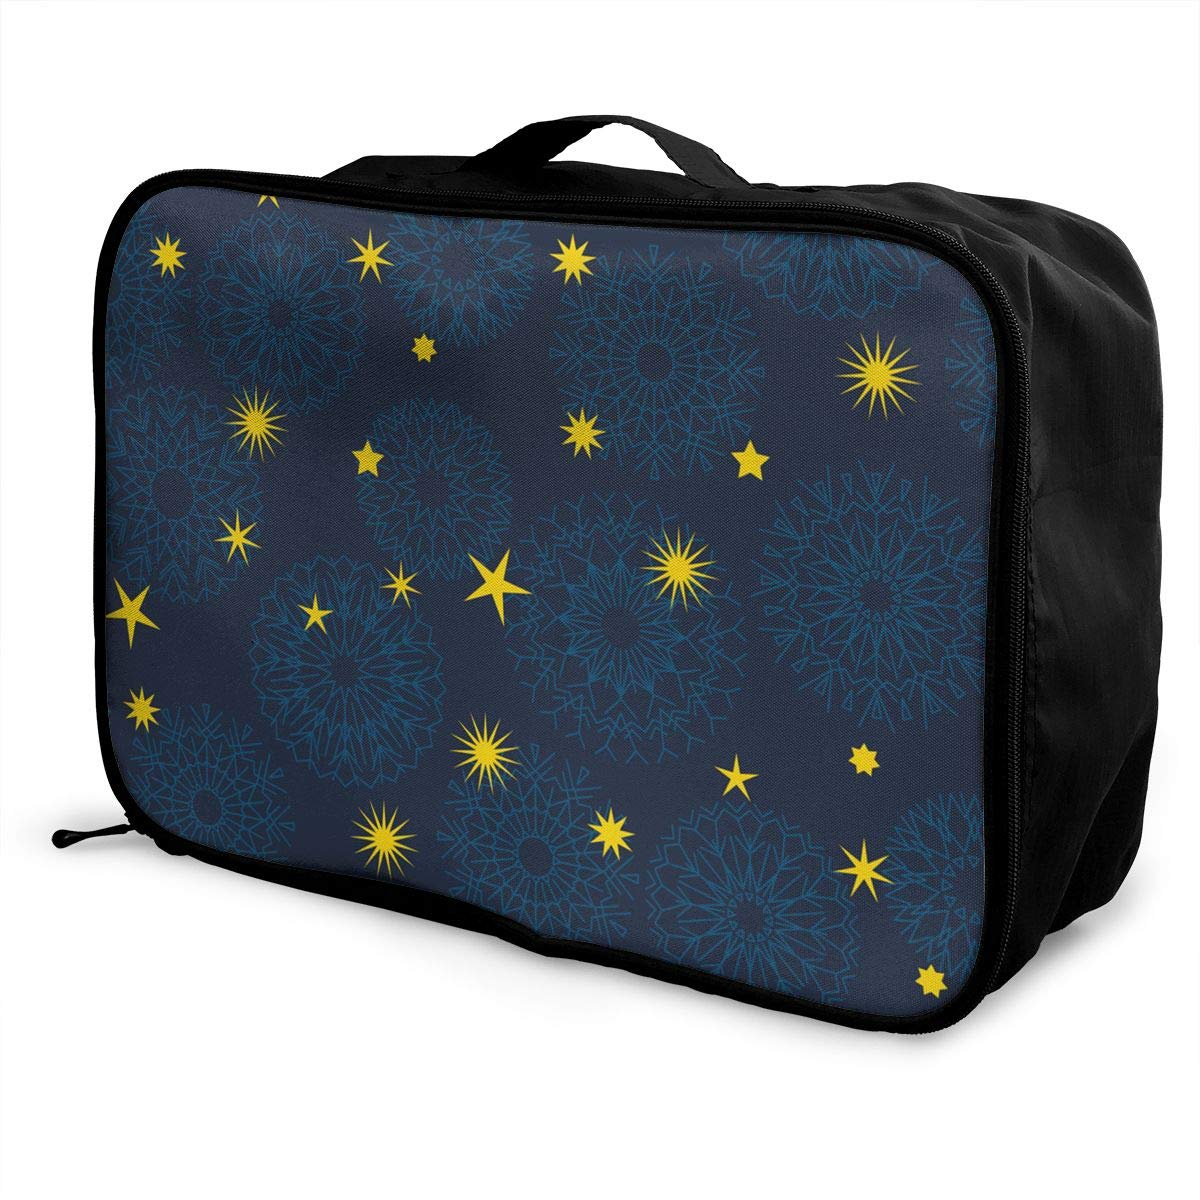 ADGAI Star and Snowflakes Simple Seamless Pattern Canvas Travel Weekender Bag,Fashion Custom Lightweight Large Capacity Portable Luggage Bag,Suitcase Trolley Bag